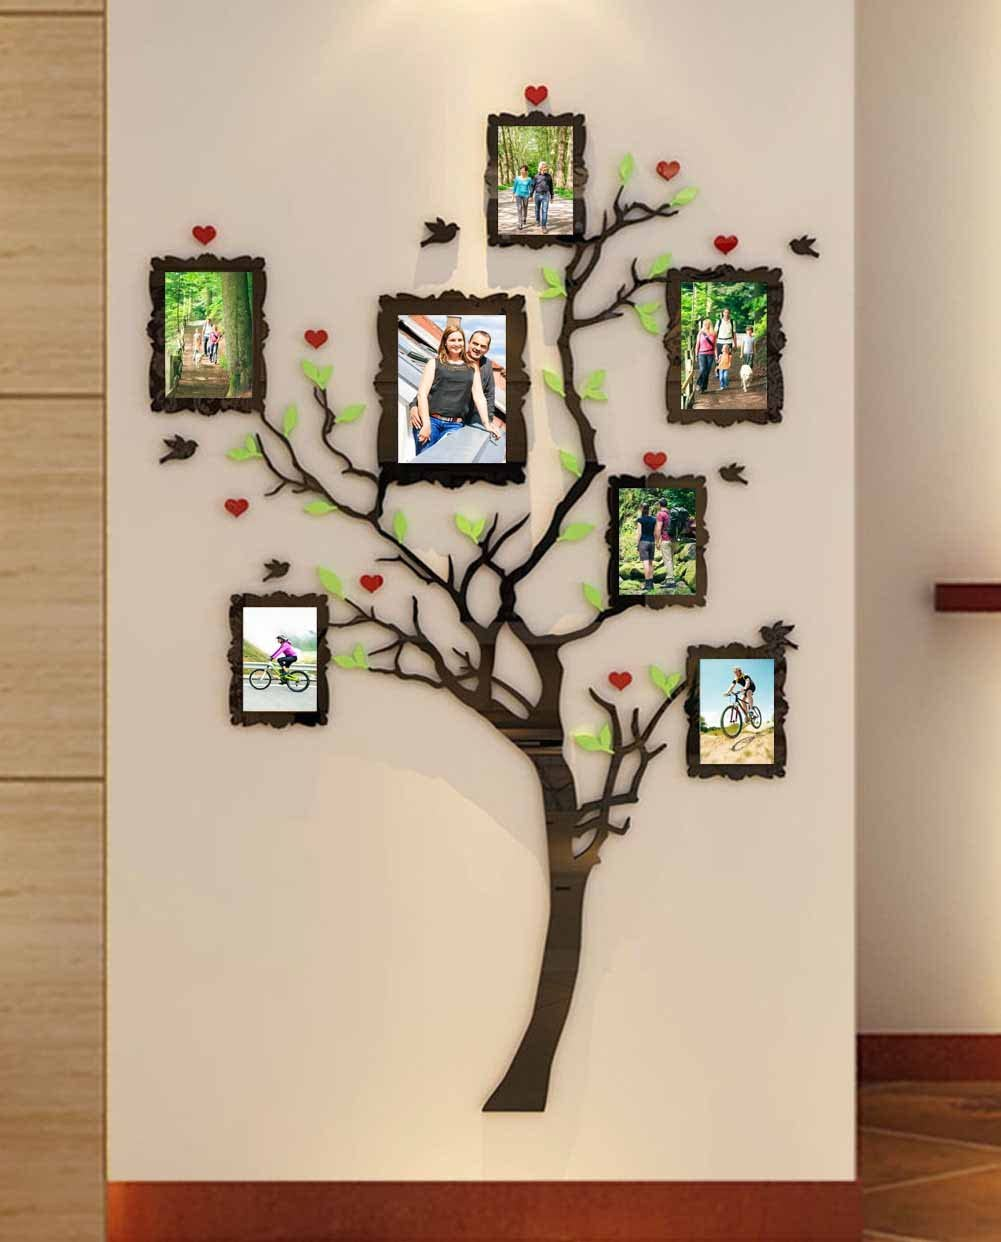 Acrylic Wall Stickers, 3D Crystal Wall Decals- Family Tree with Frames (Small)